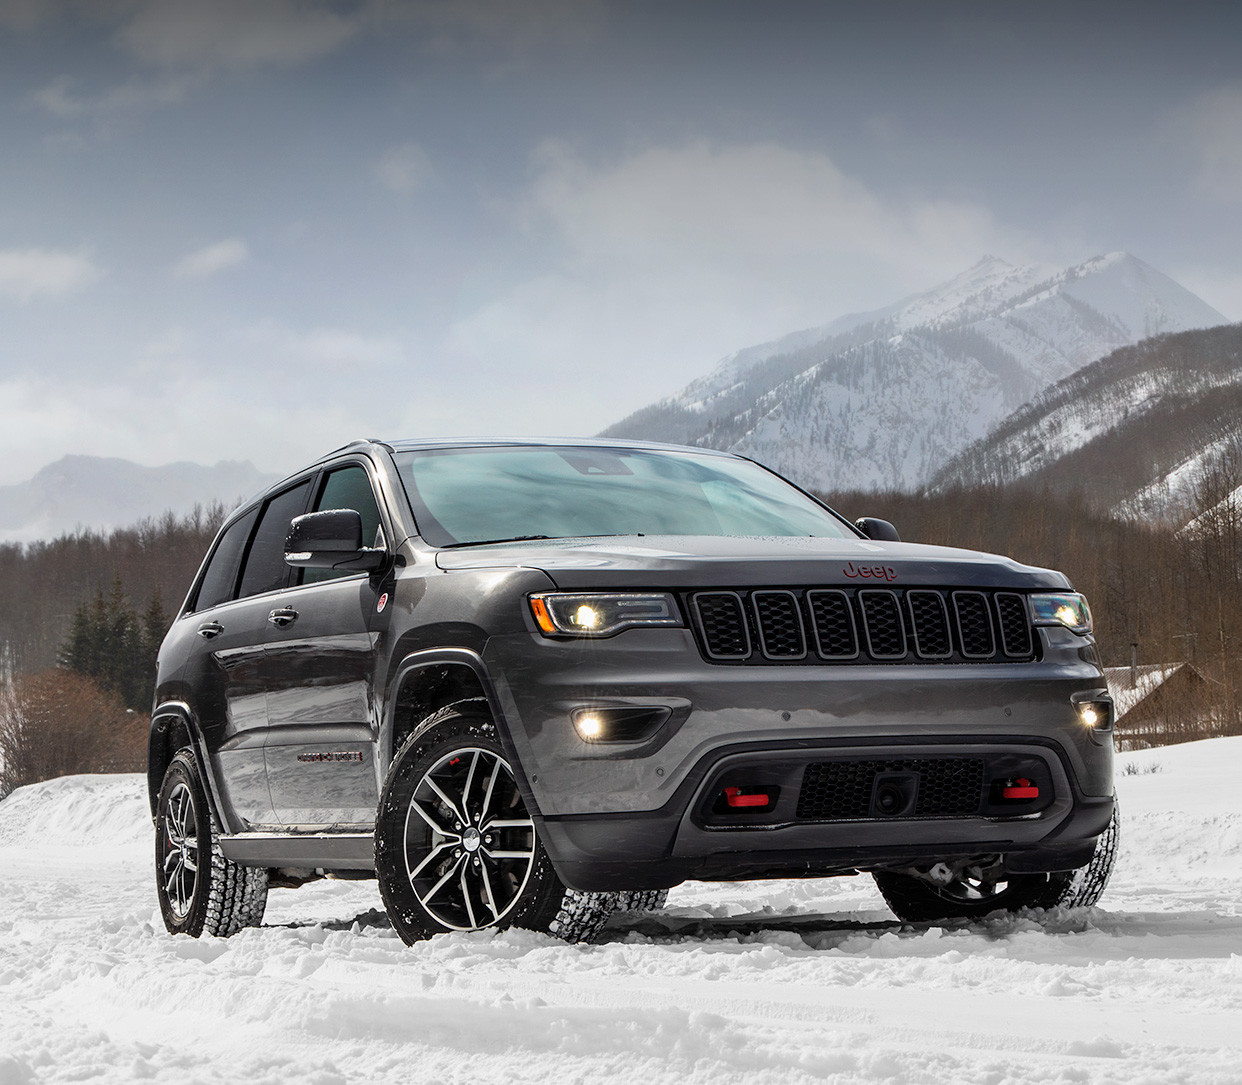 Front view of the 2020 Jeep Grand Cherokee Trailhawk in grey parked on a snow-covered road